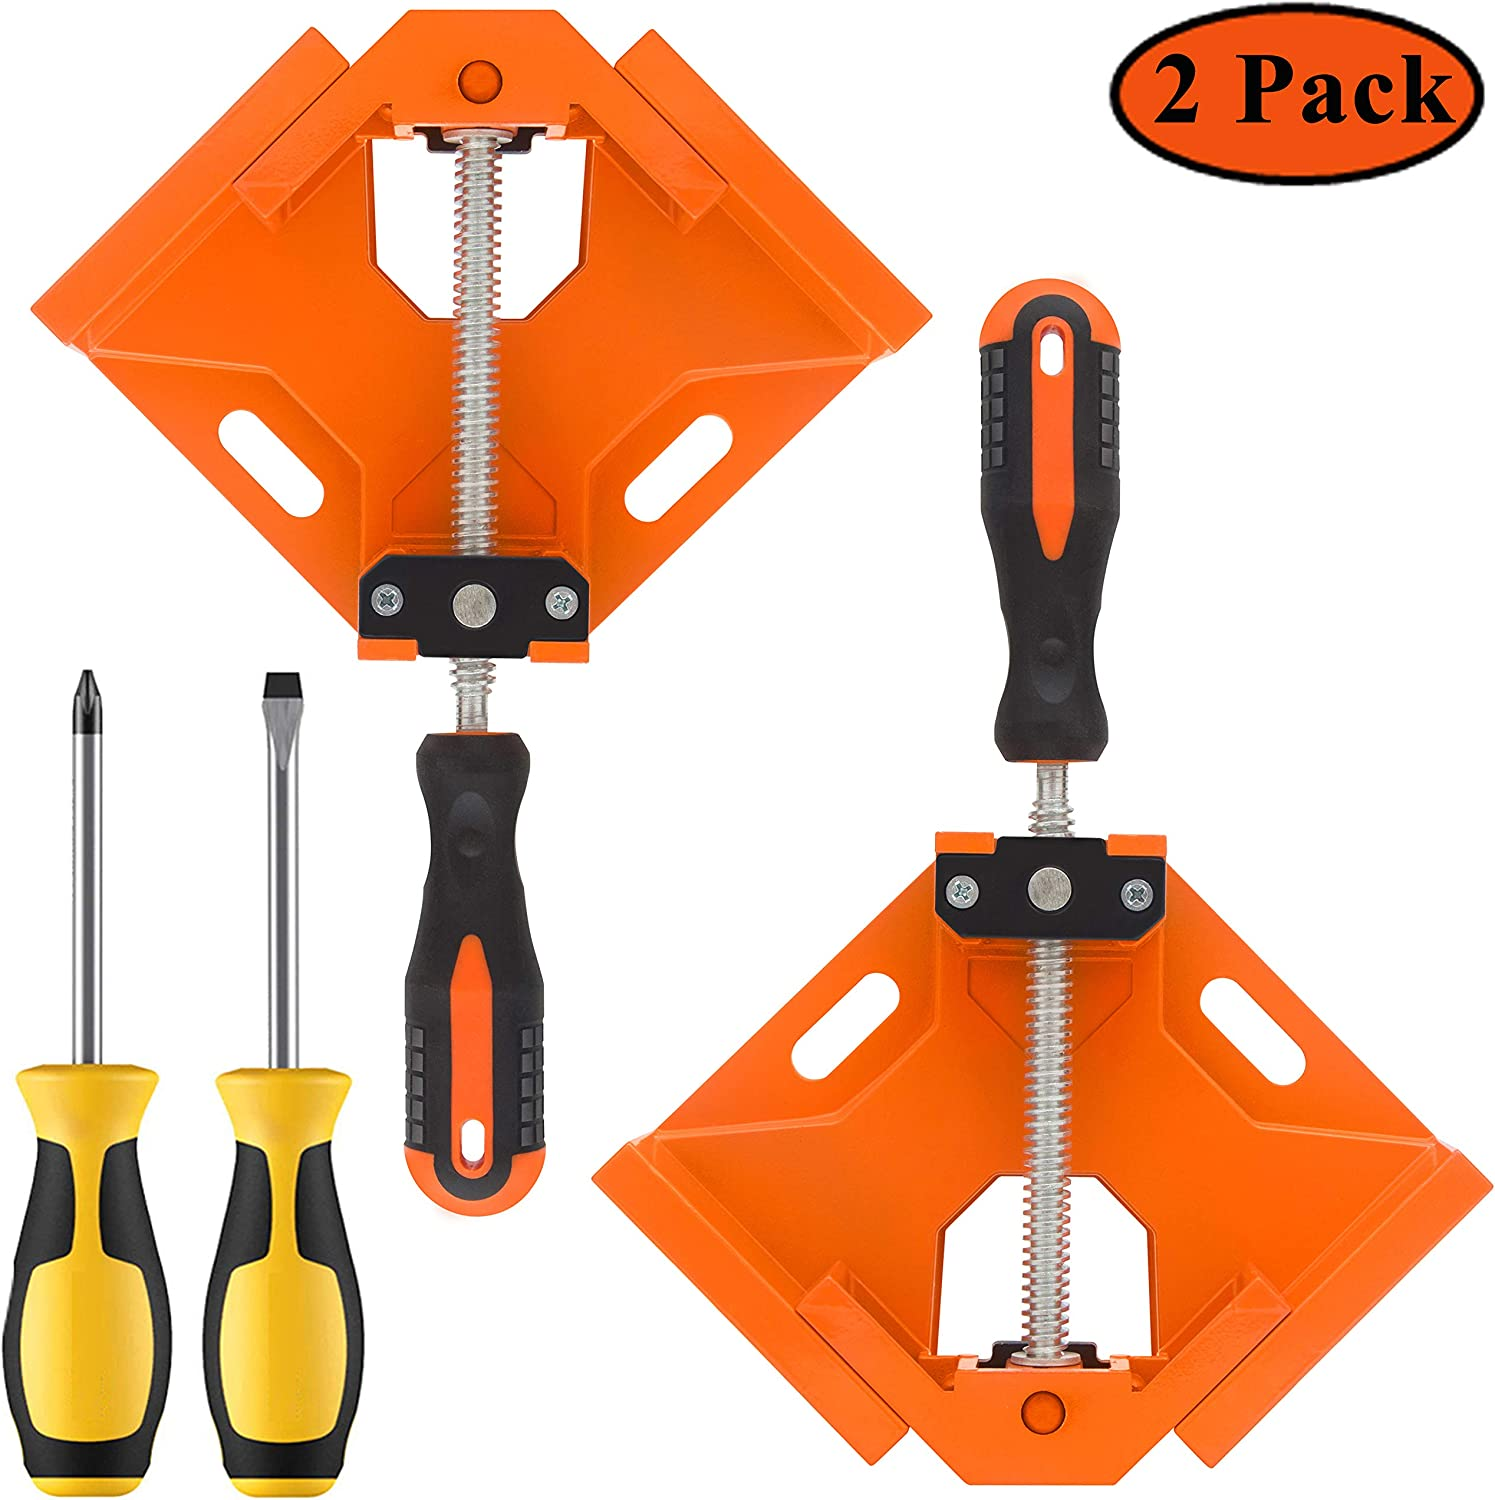 LEATBUY Angle Clamps 90 Degree Right Corner Holder Welding Clamp 2pcs Orange Perfect for Carpenter Wood-Working Engineering Vise Adjustable Swing Bench Tool